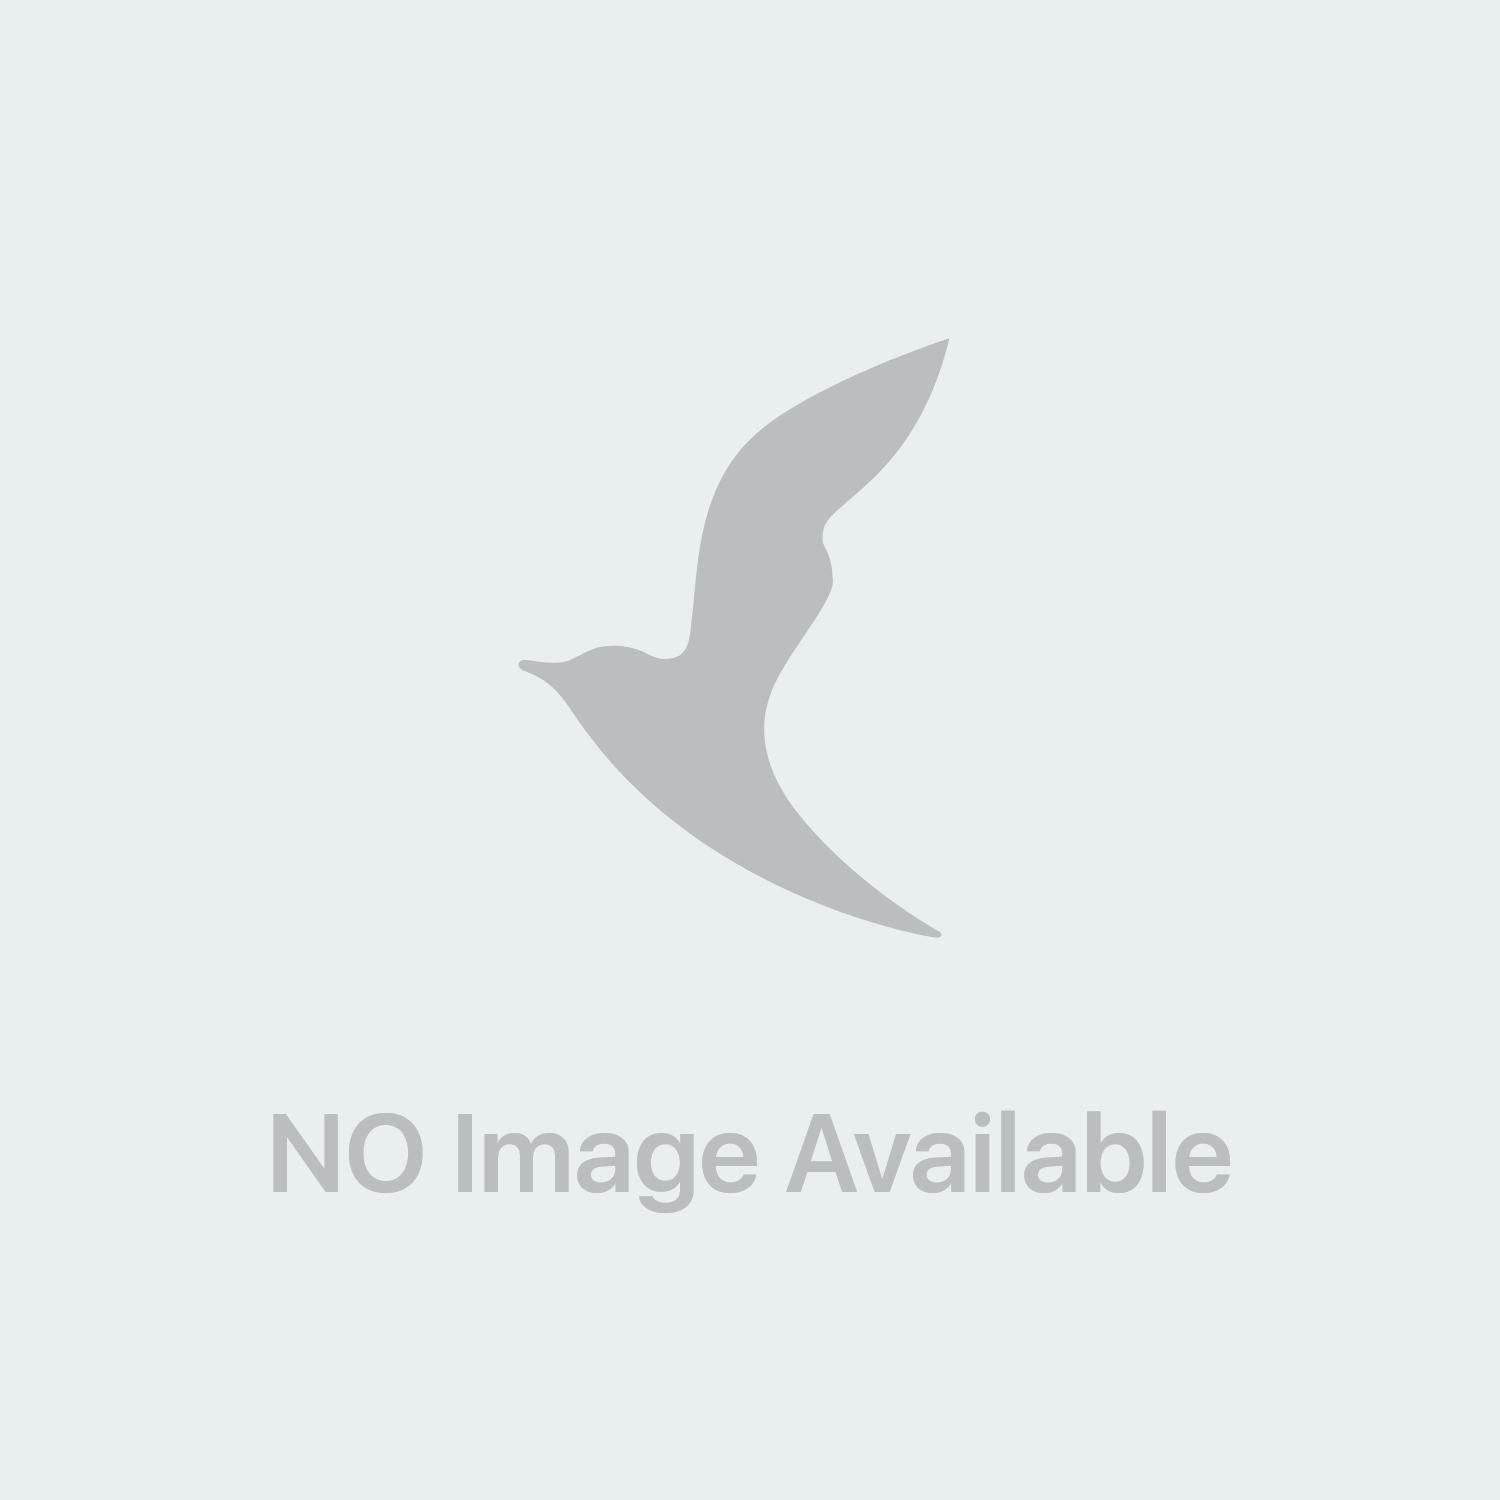 XL-S Medical Brucia Grassi Zenoctil Integratore Dimagrante 60 Compresse